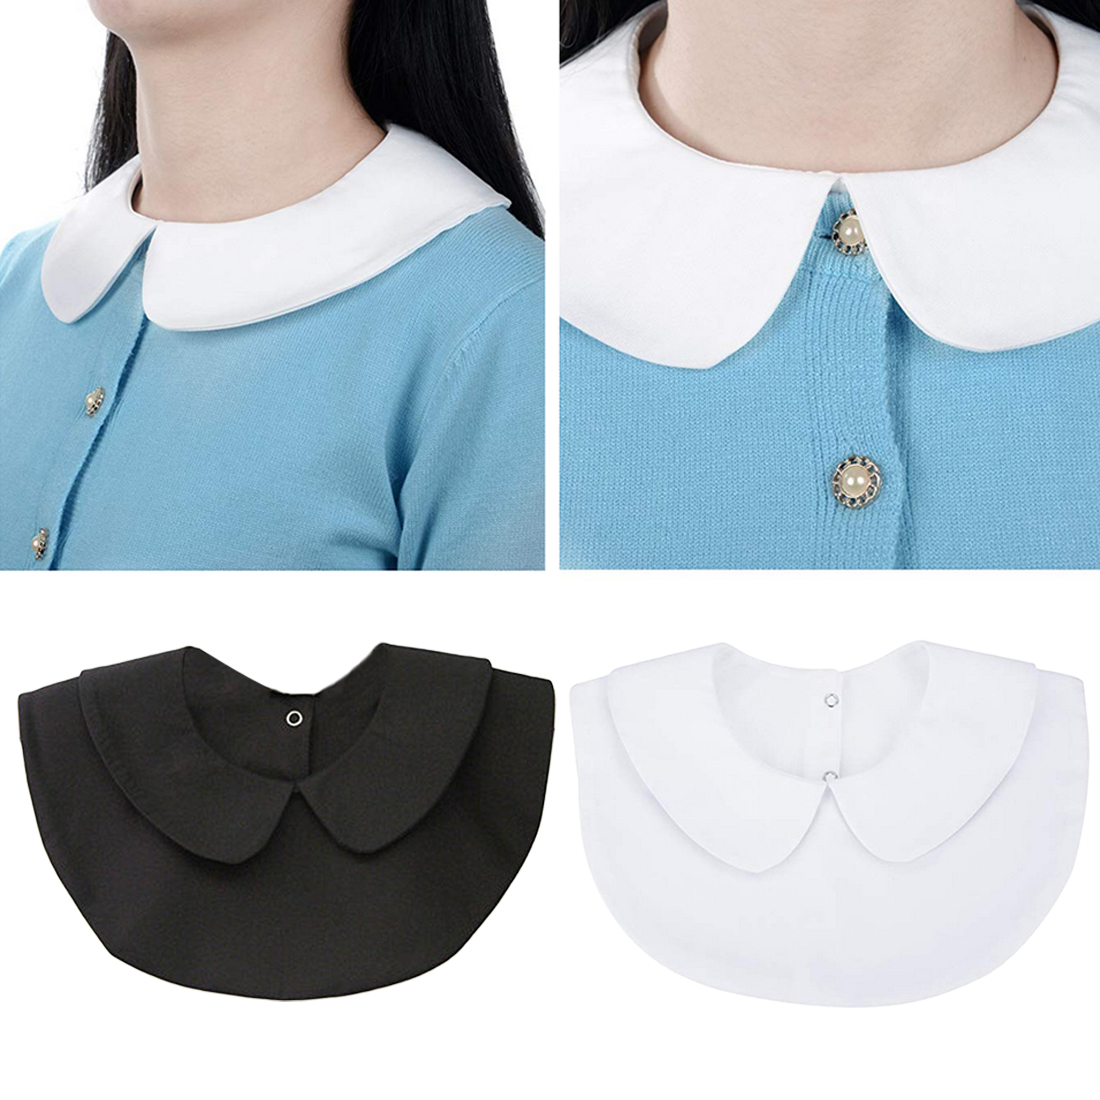 Women Clothes Accessories Shirt Fake Collar Detachable Collar Lapel False Collar Removable Vintage Solid White Black Tie